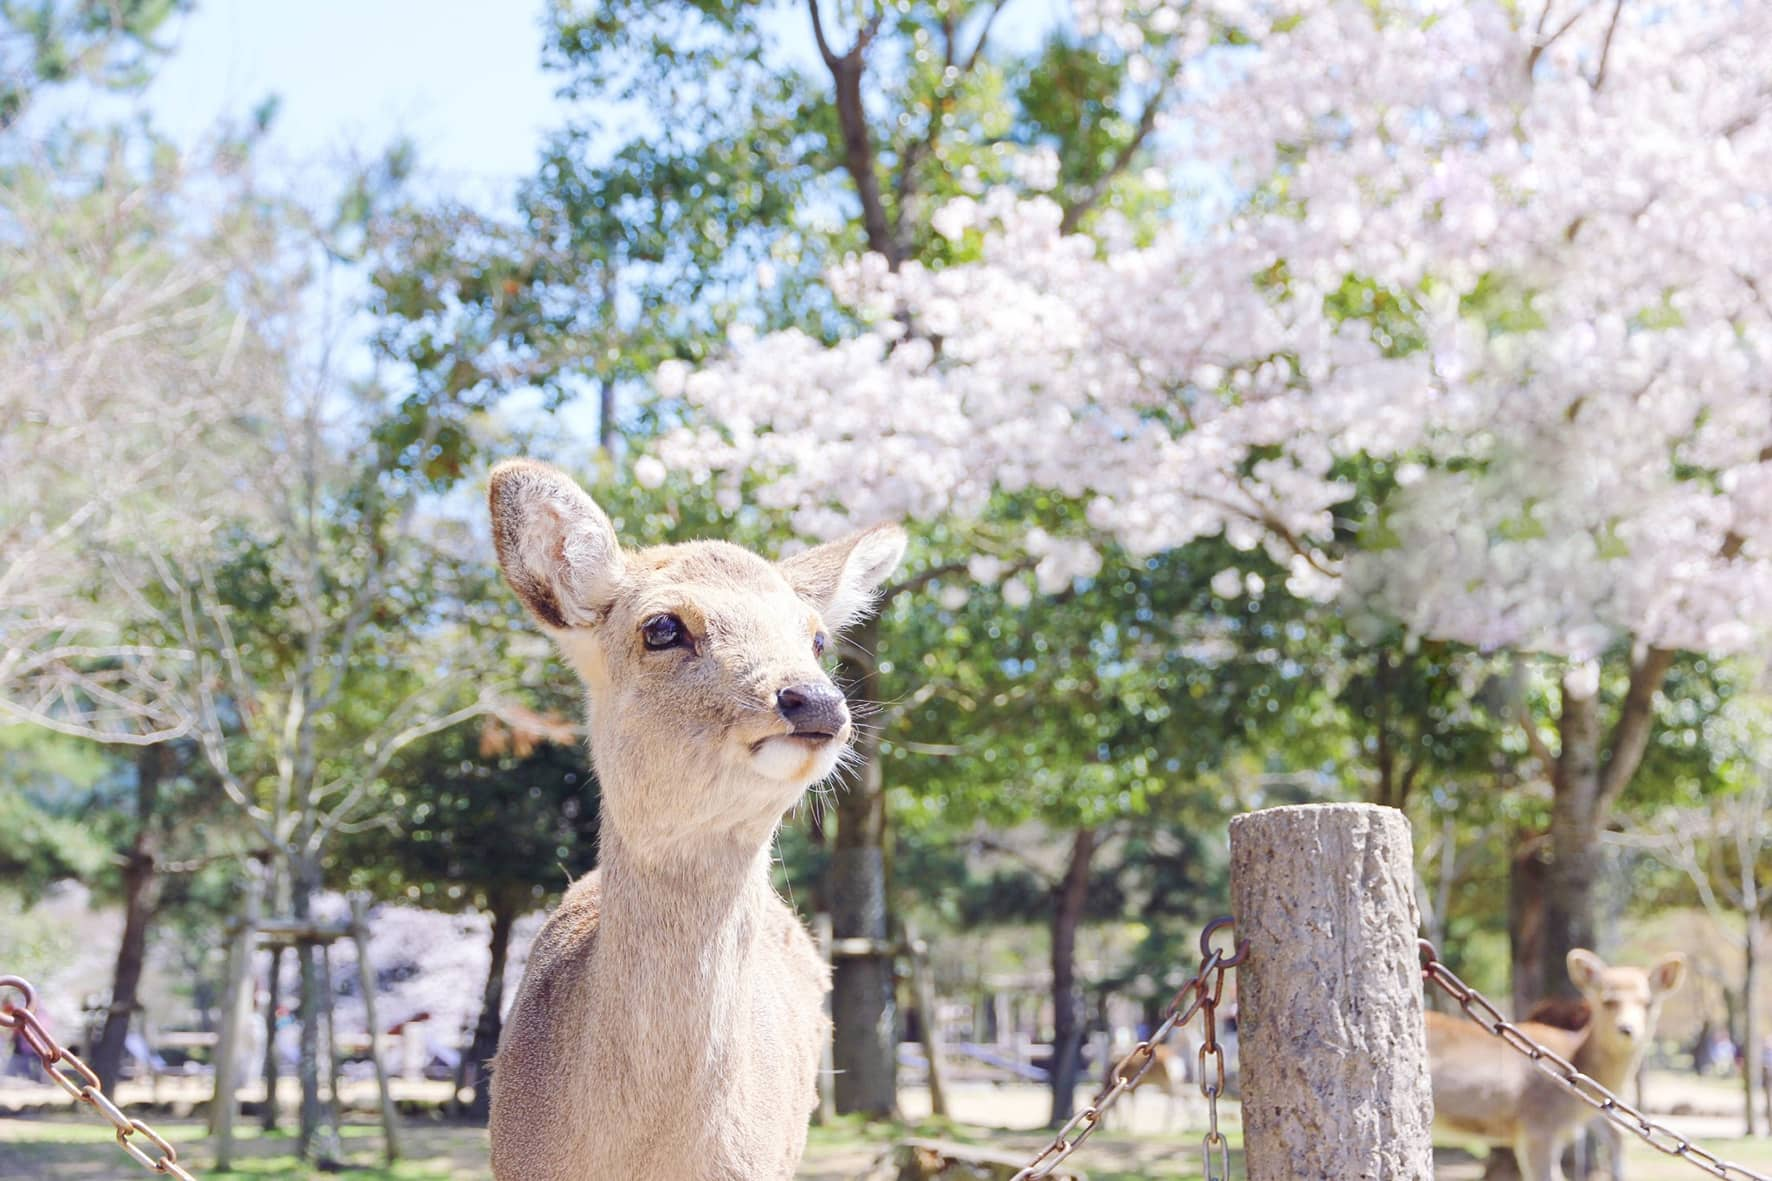 Go to Nara and follow the red deer Bambi